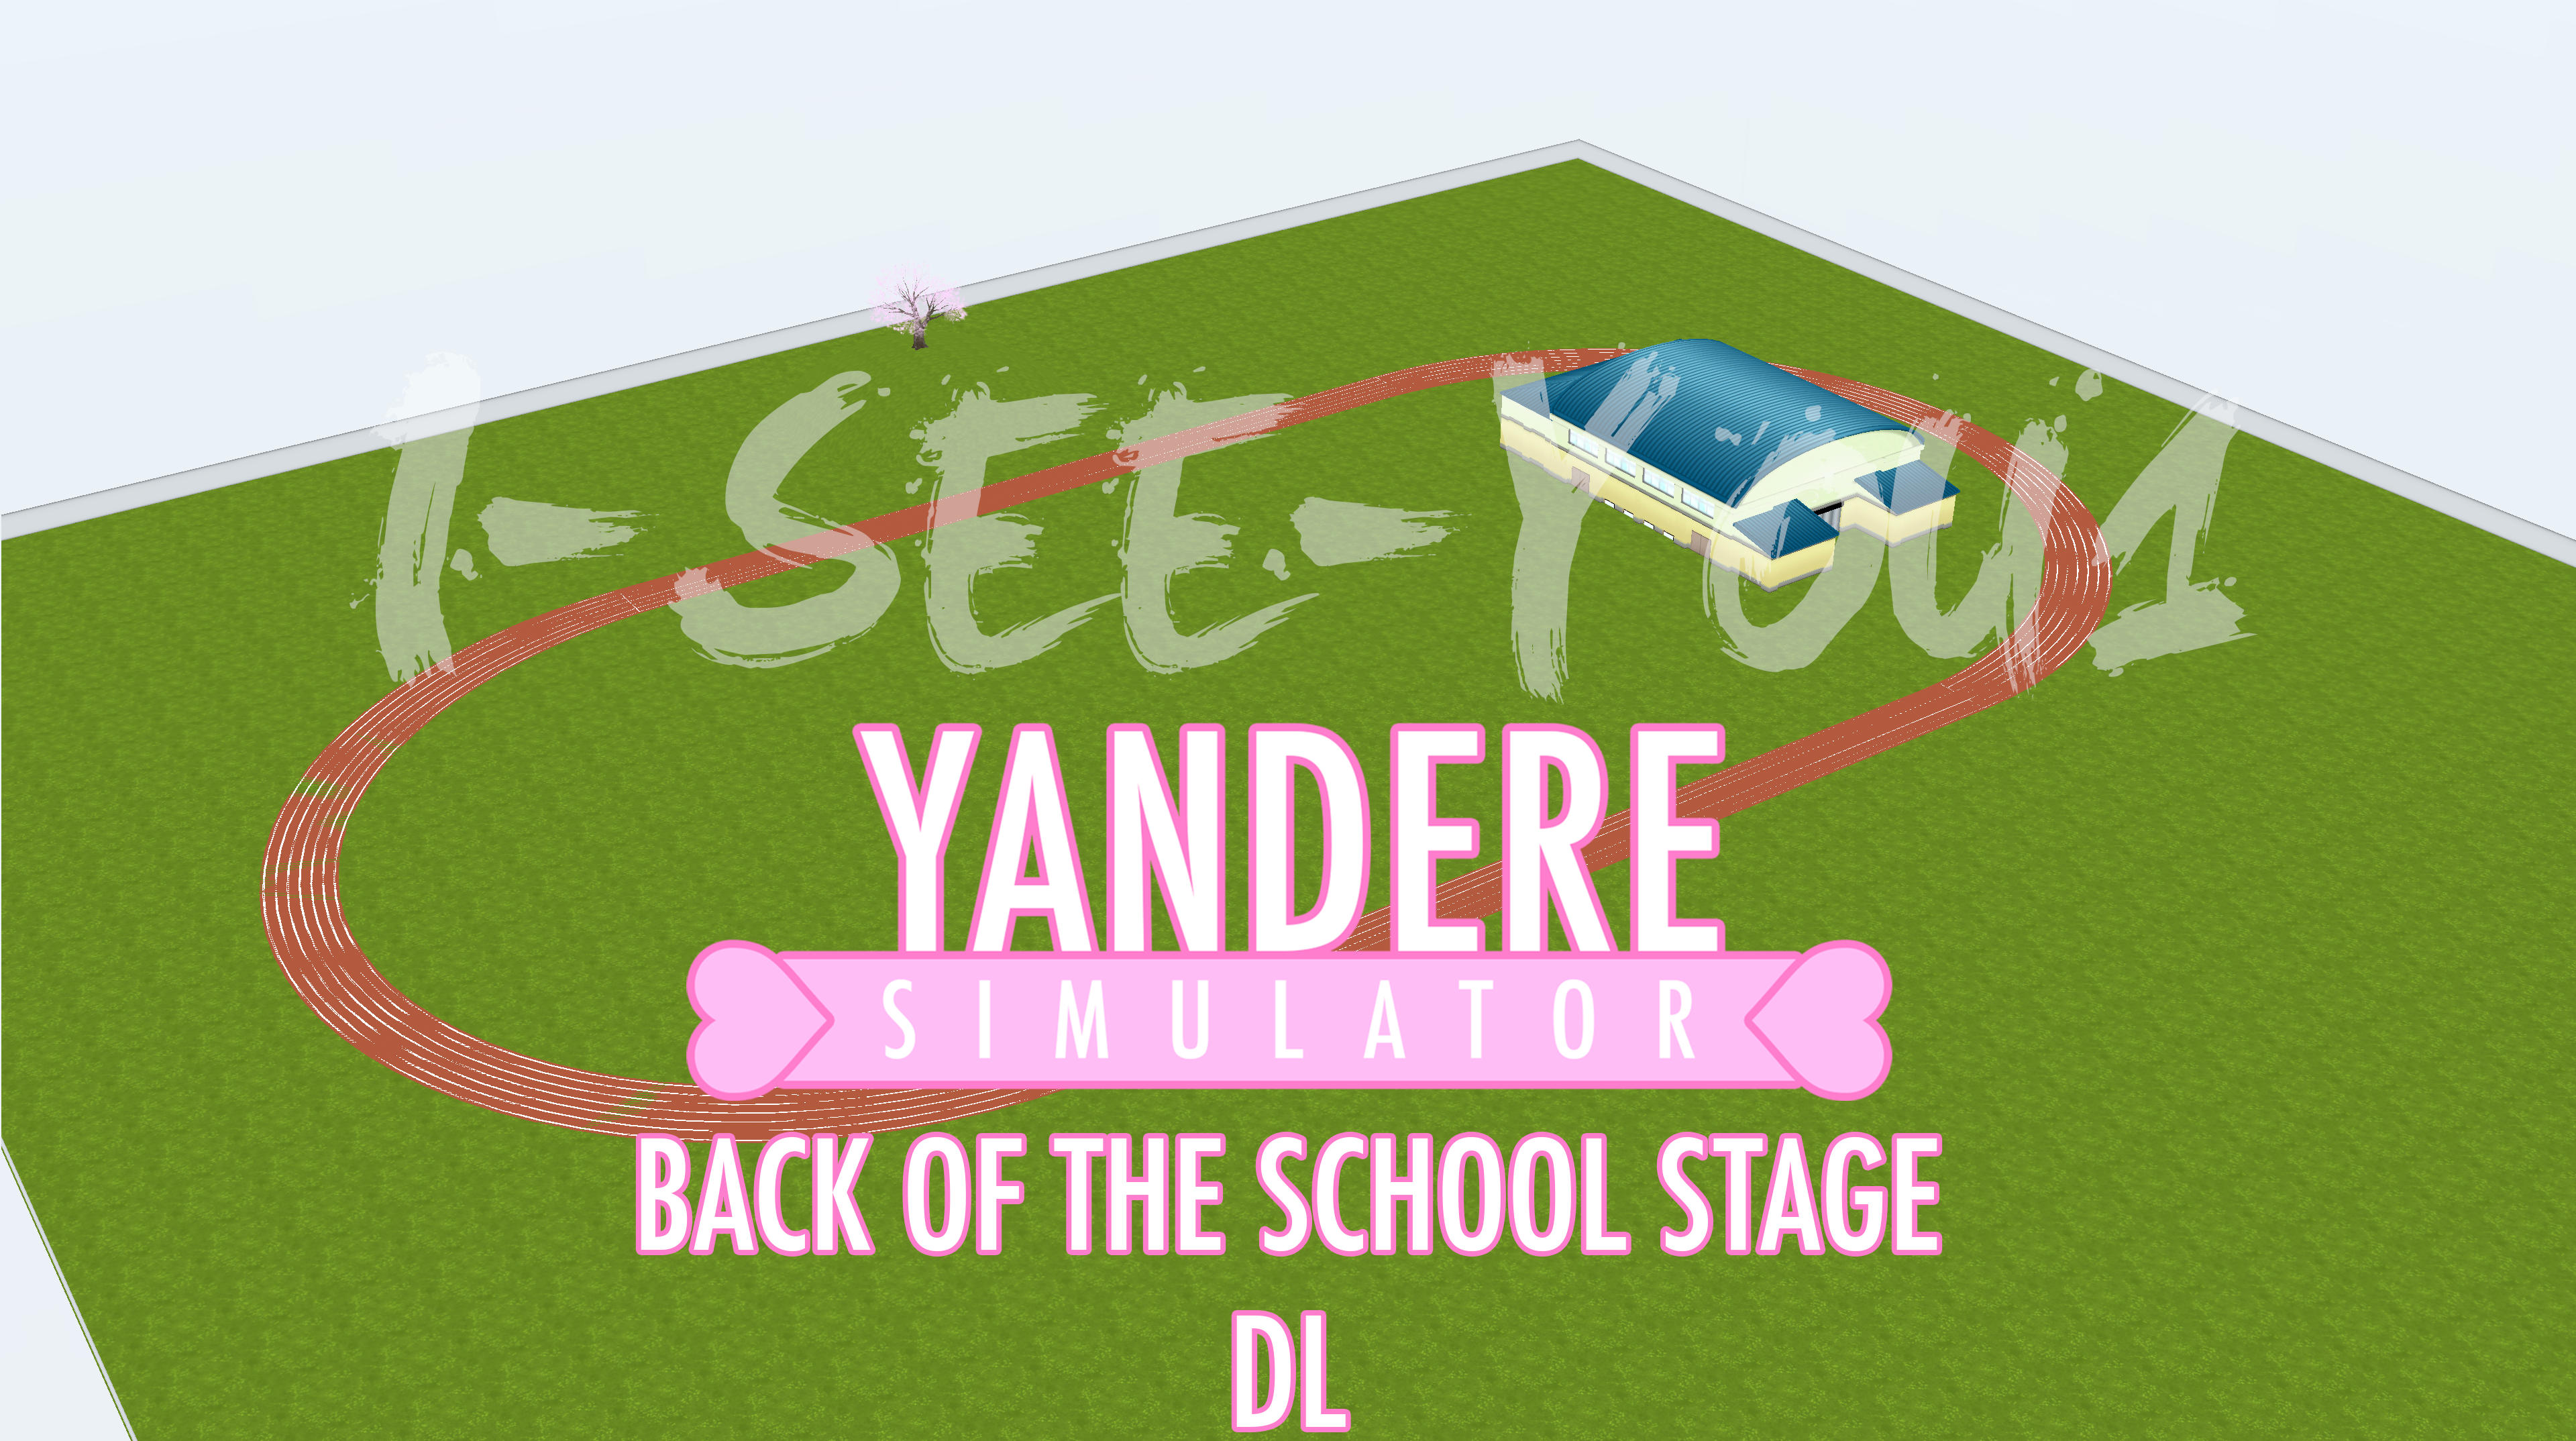 Yandere Sim Mmd Stage Back Of The School Dl By I See You1 On